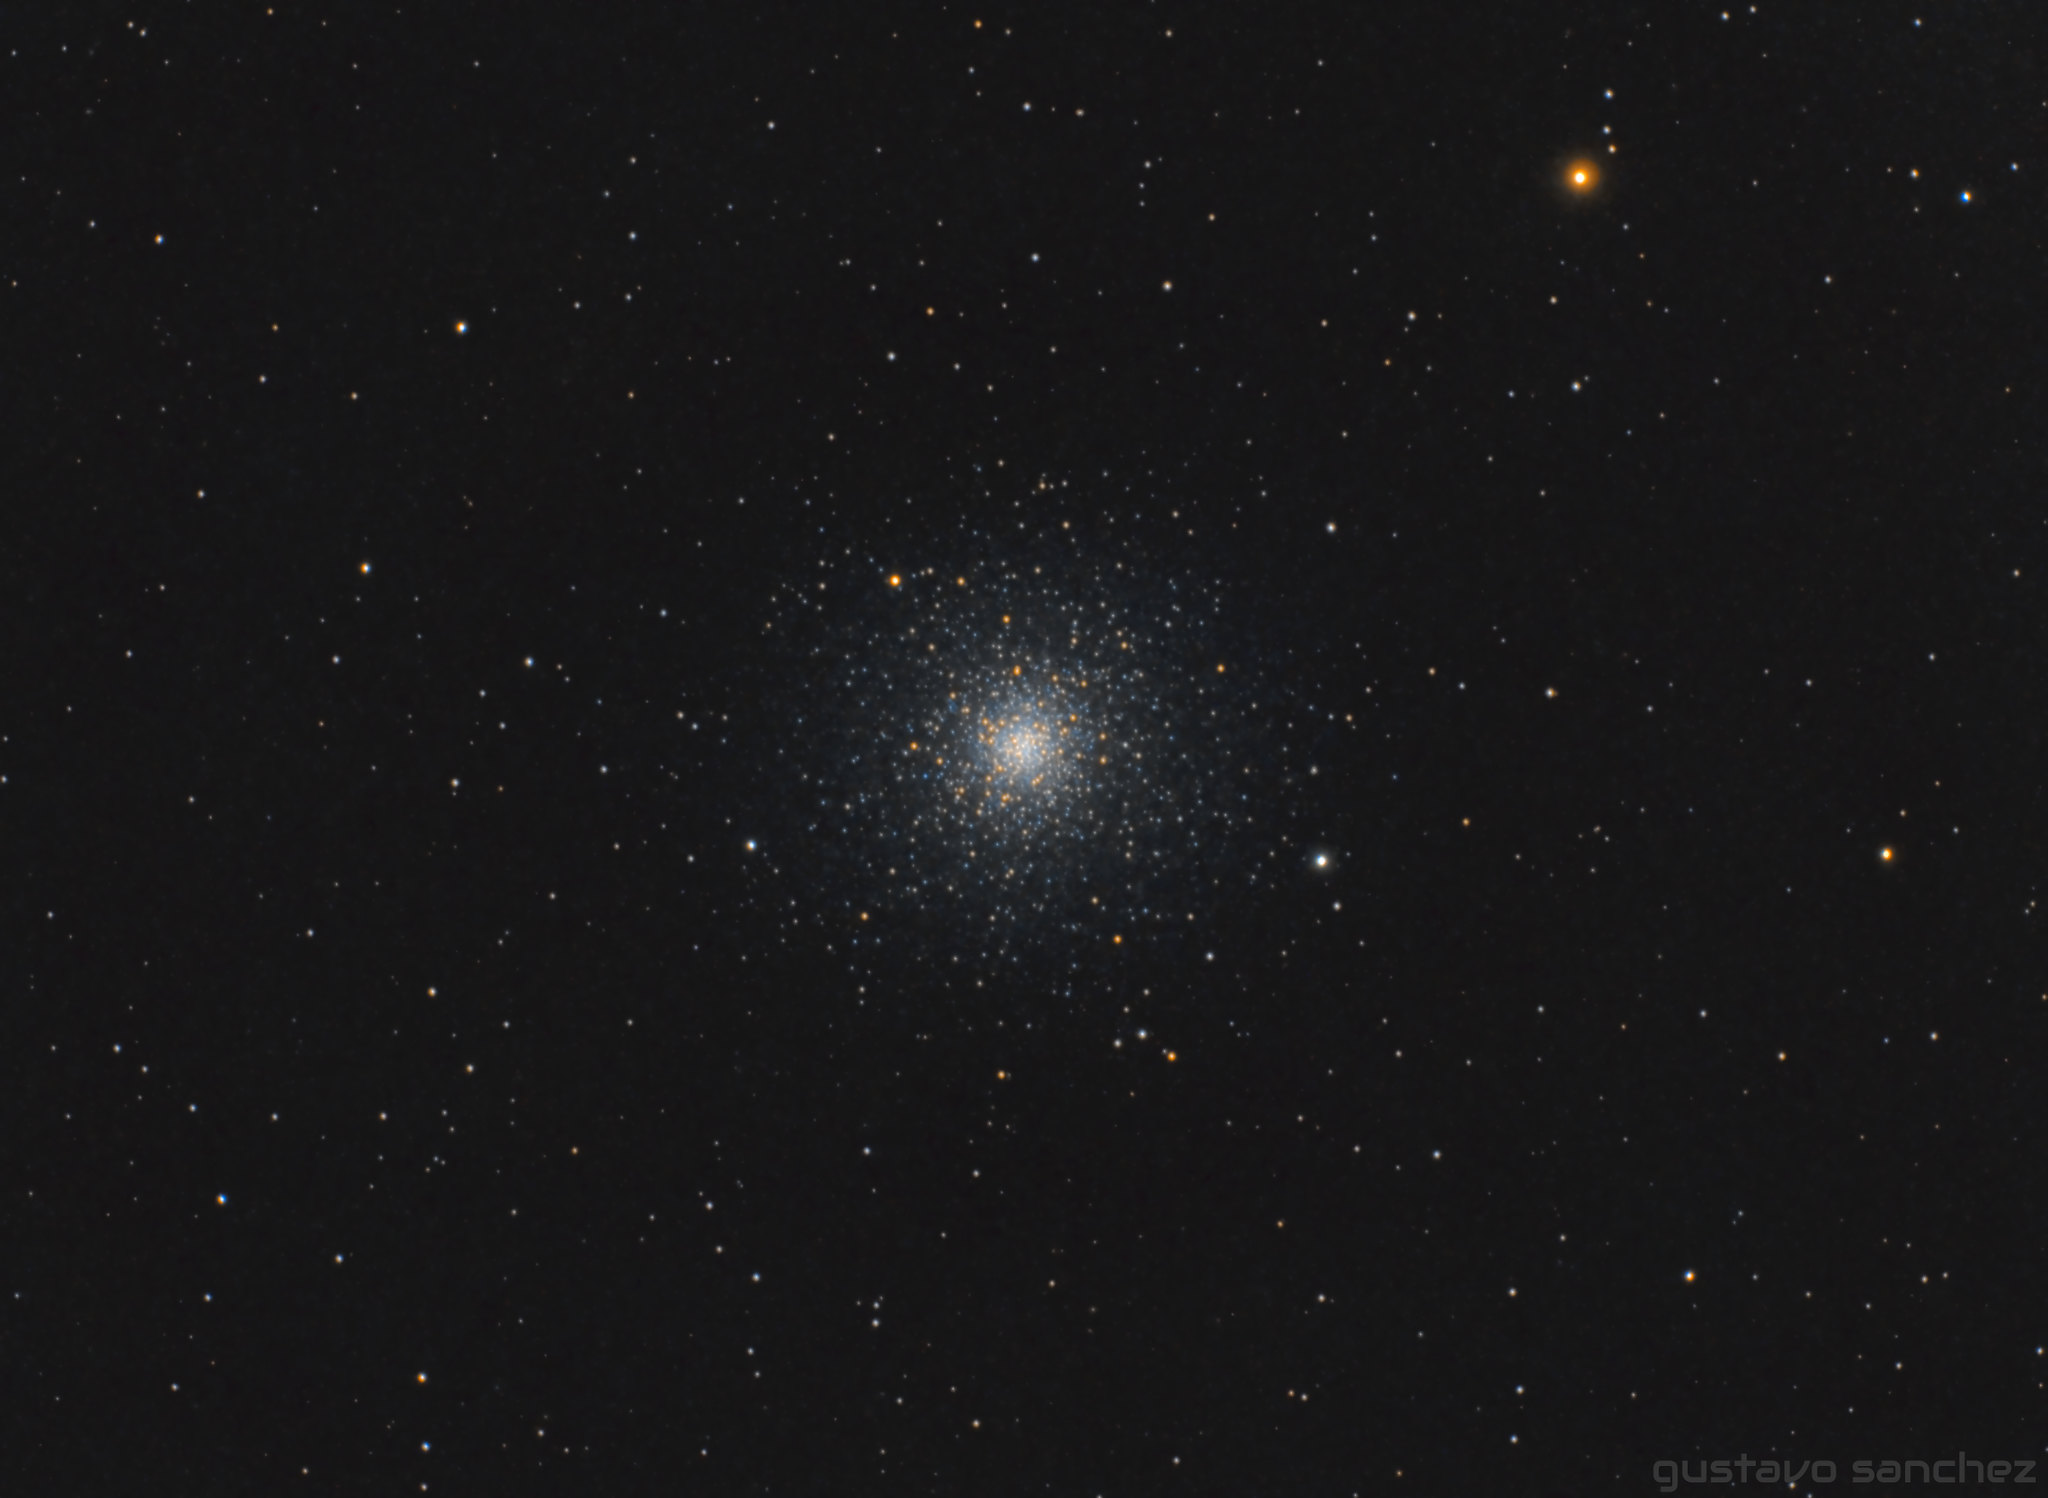 Messier 3 - Annotated